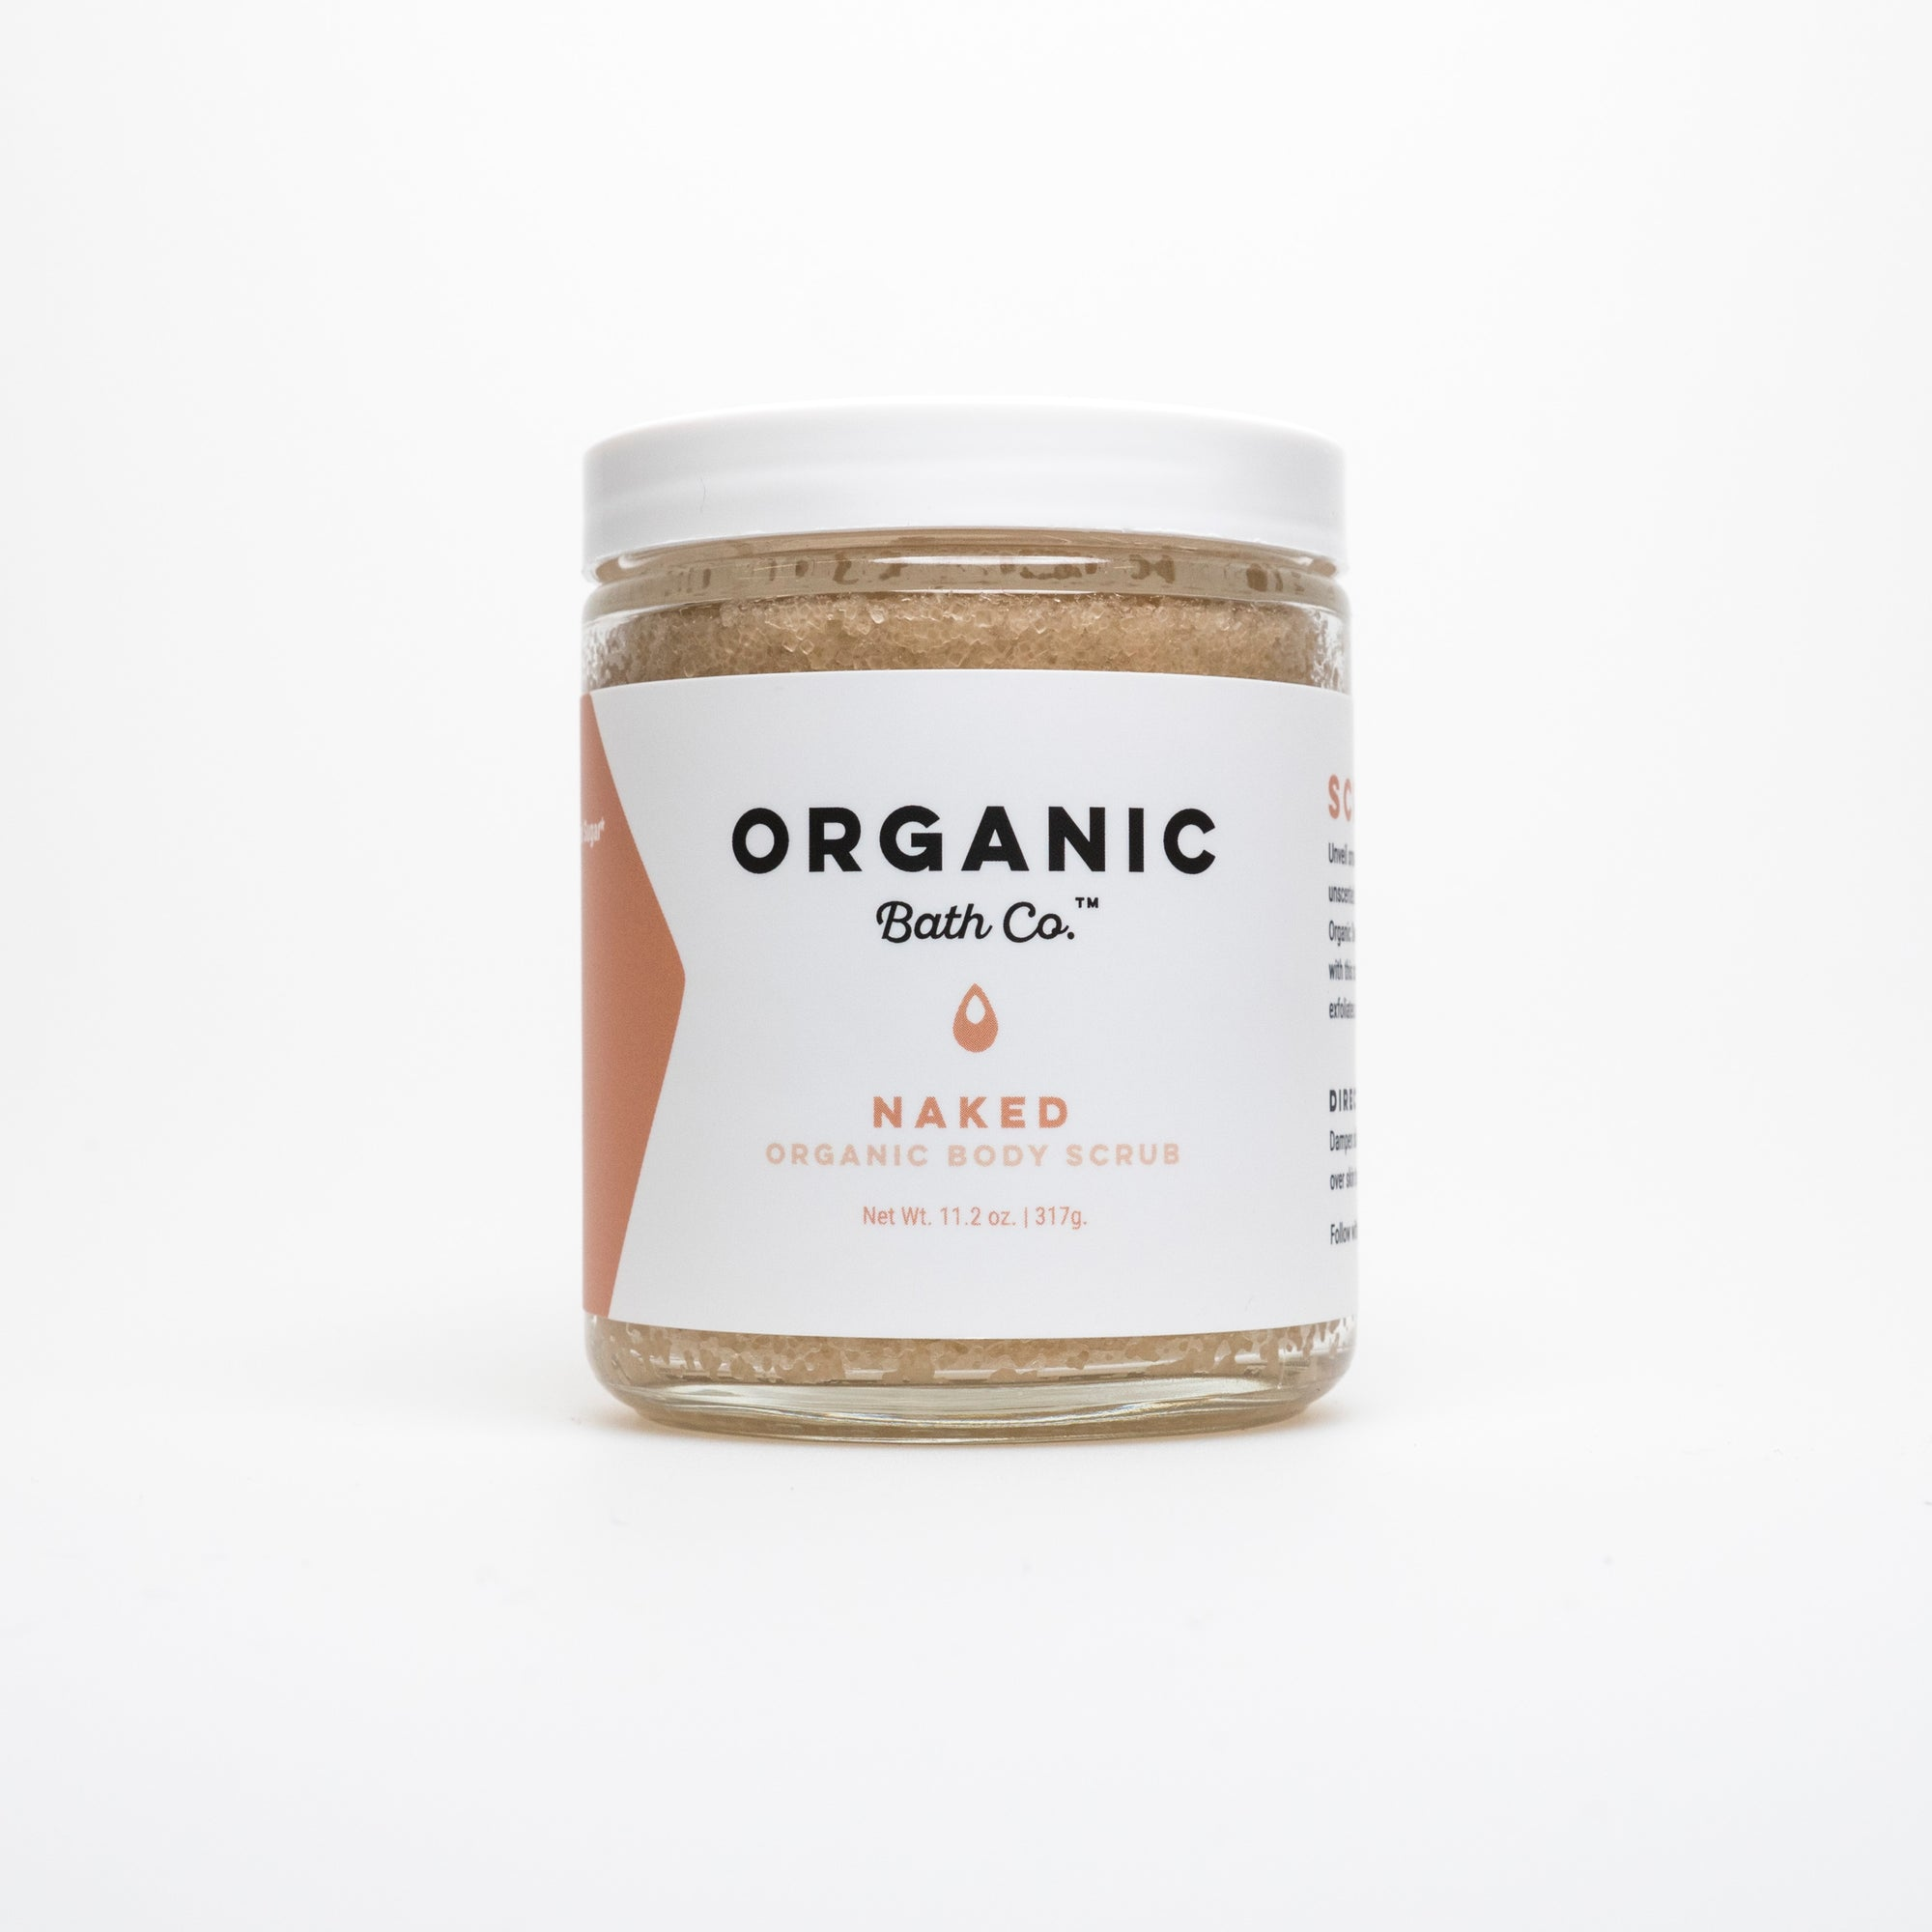 Naked Organic Body Scrub